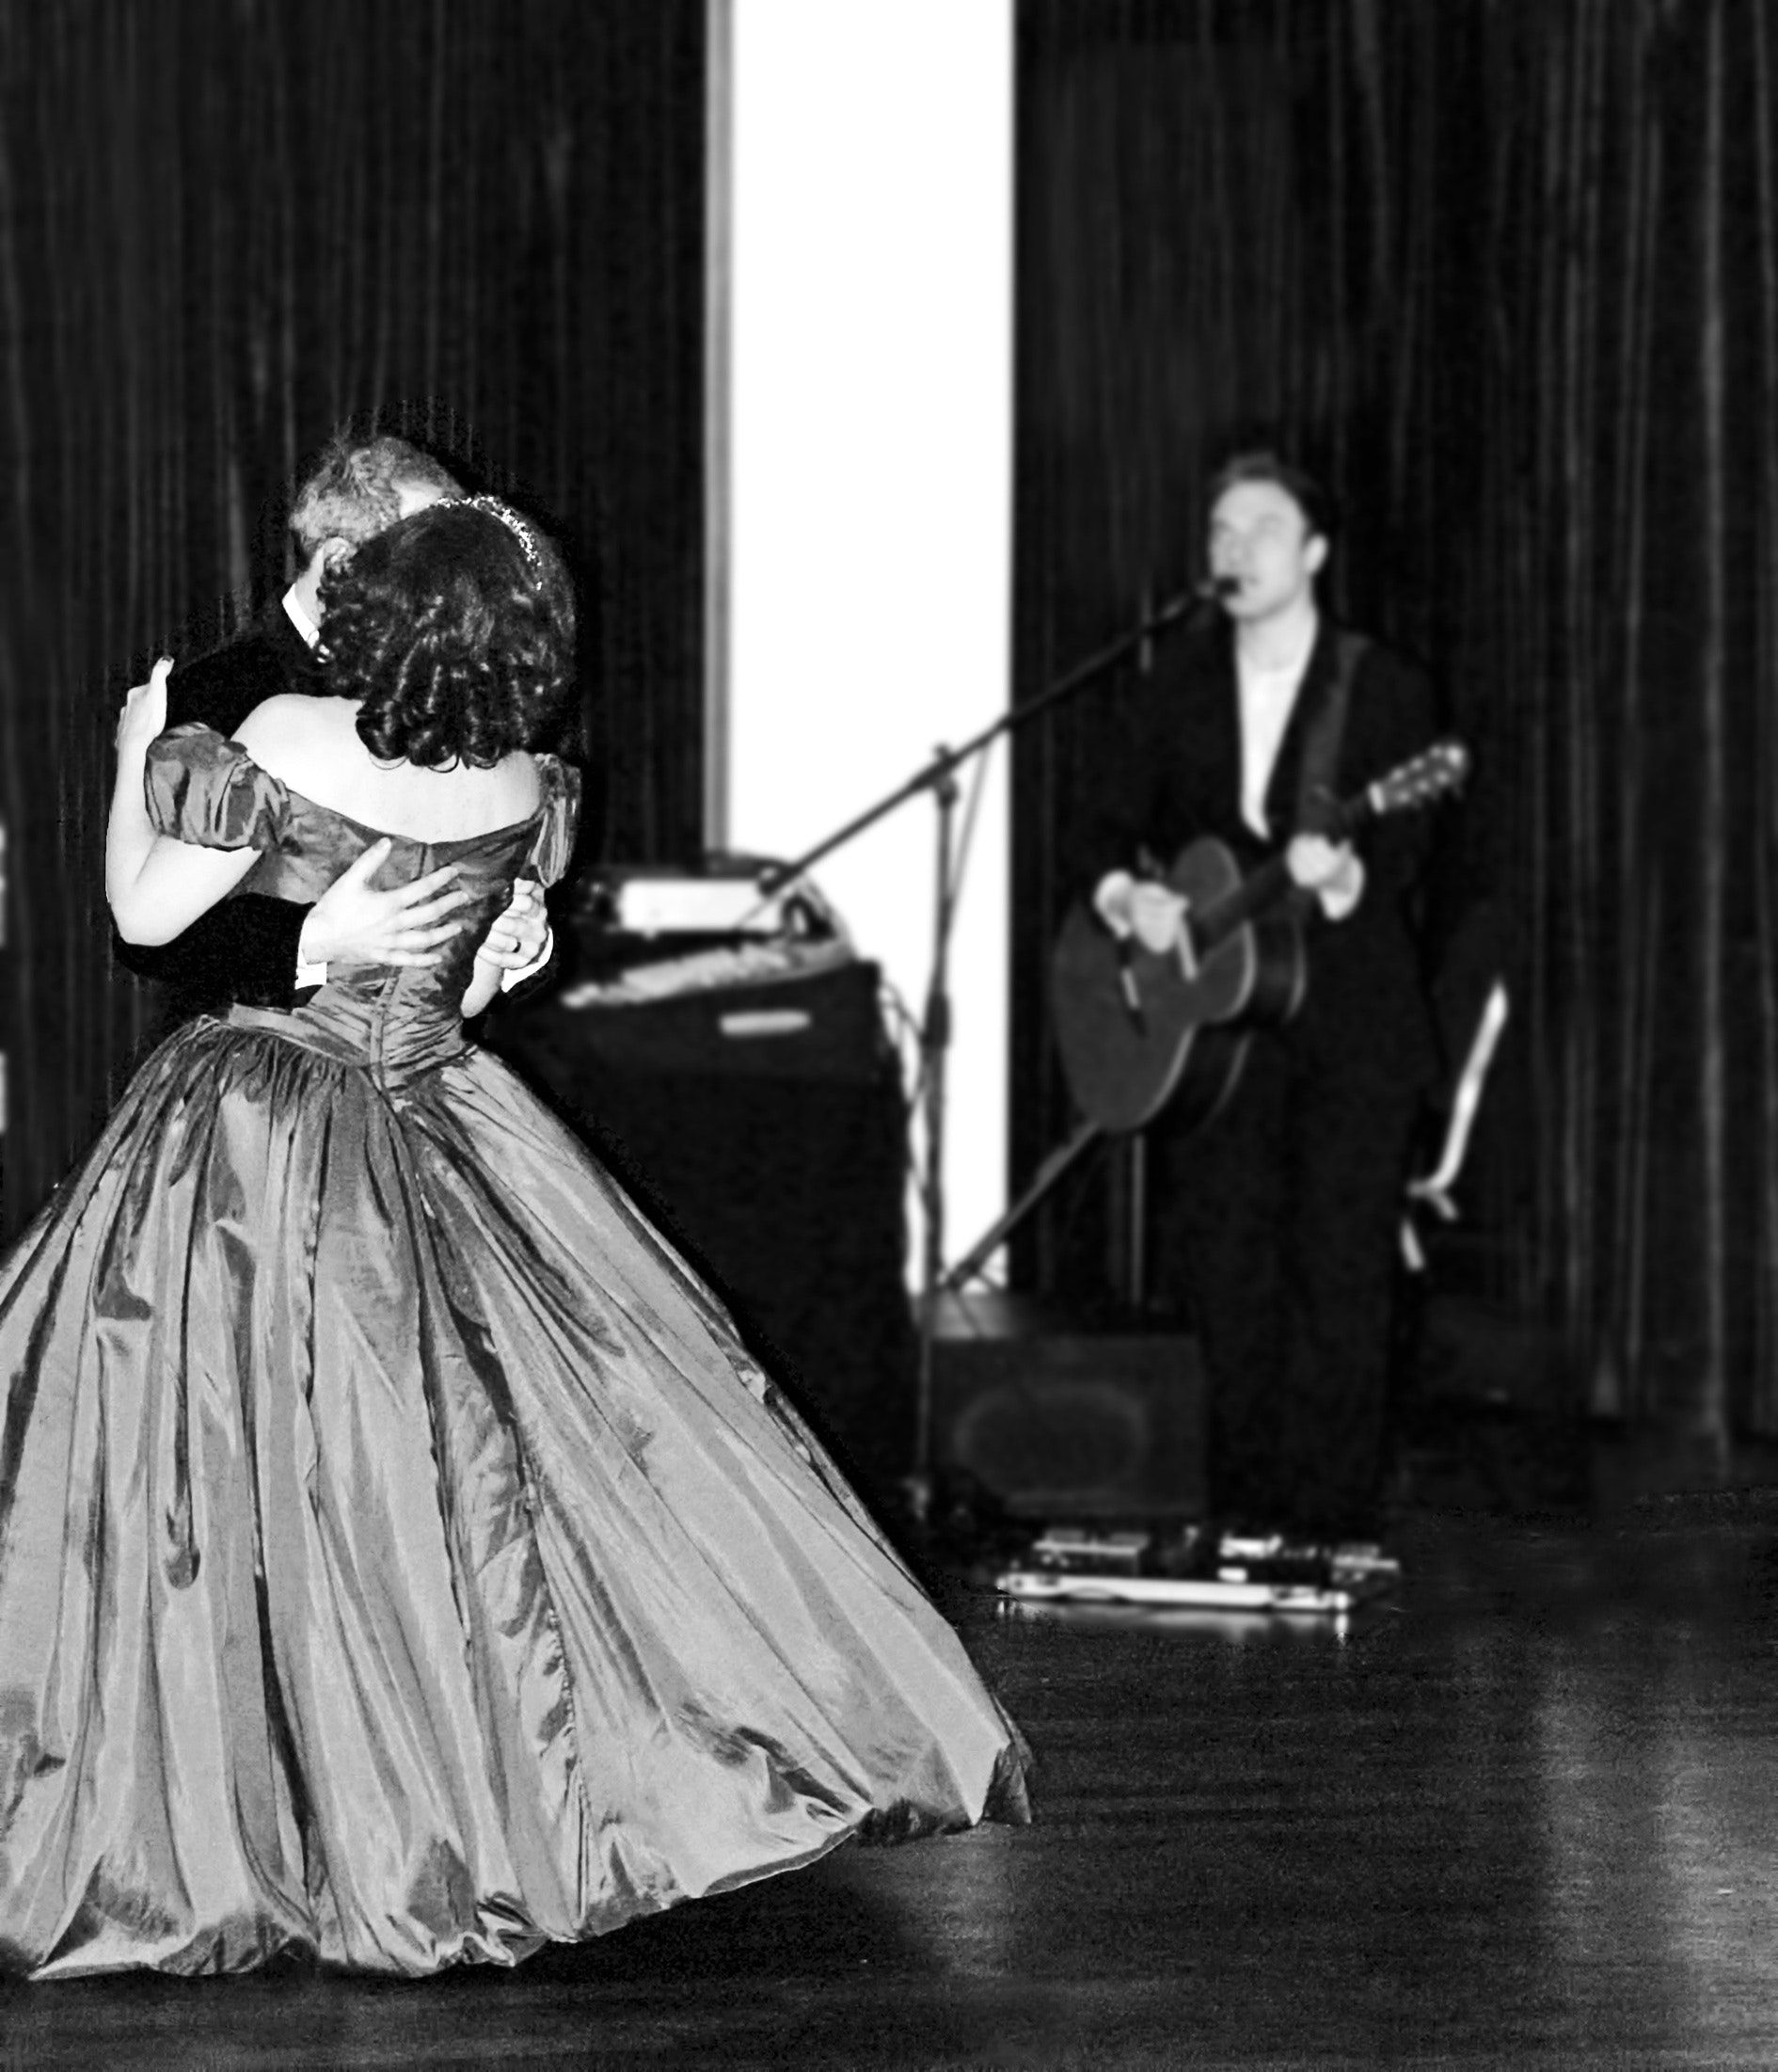 Man and Woman Dancing in Prom Apparel Near Man Singing, Band, Black-and-white, Couple, Dance, HQ Photo